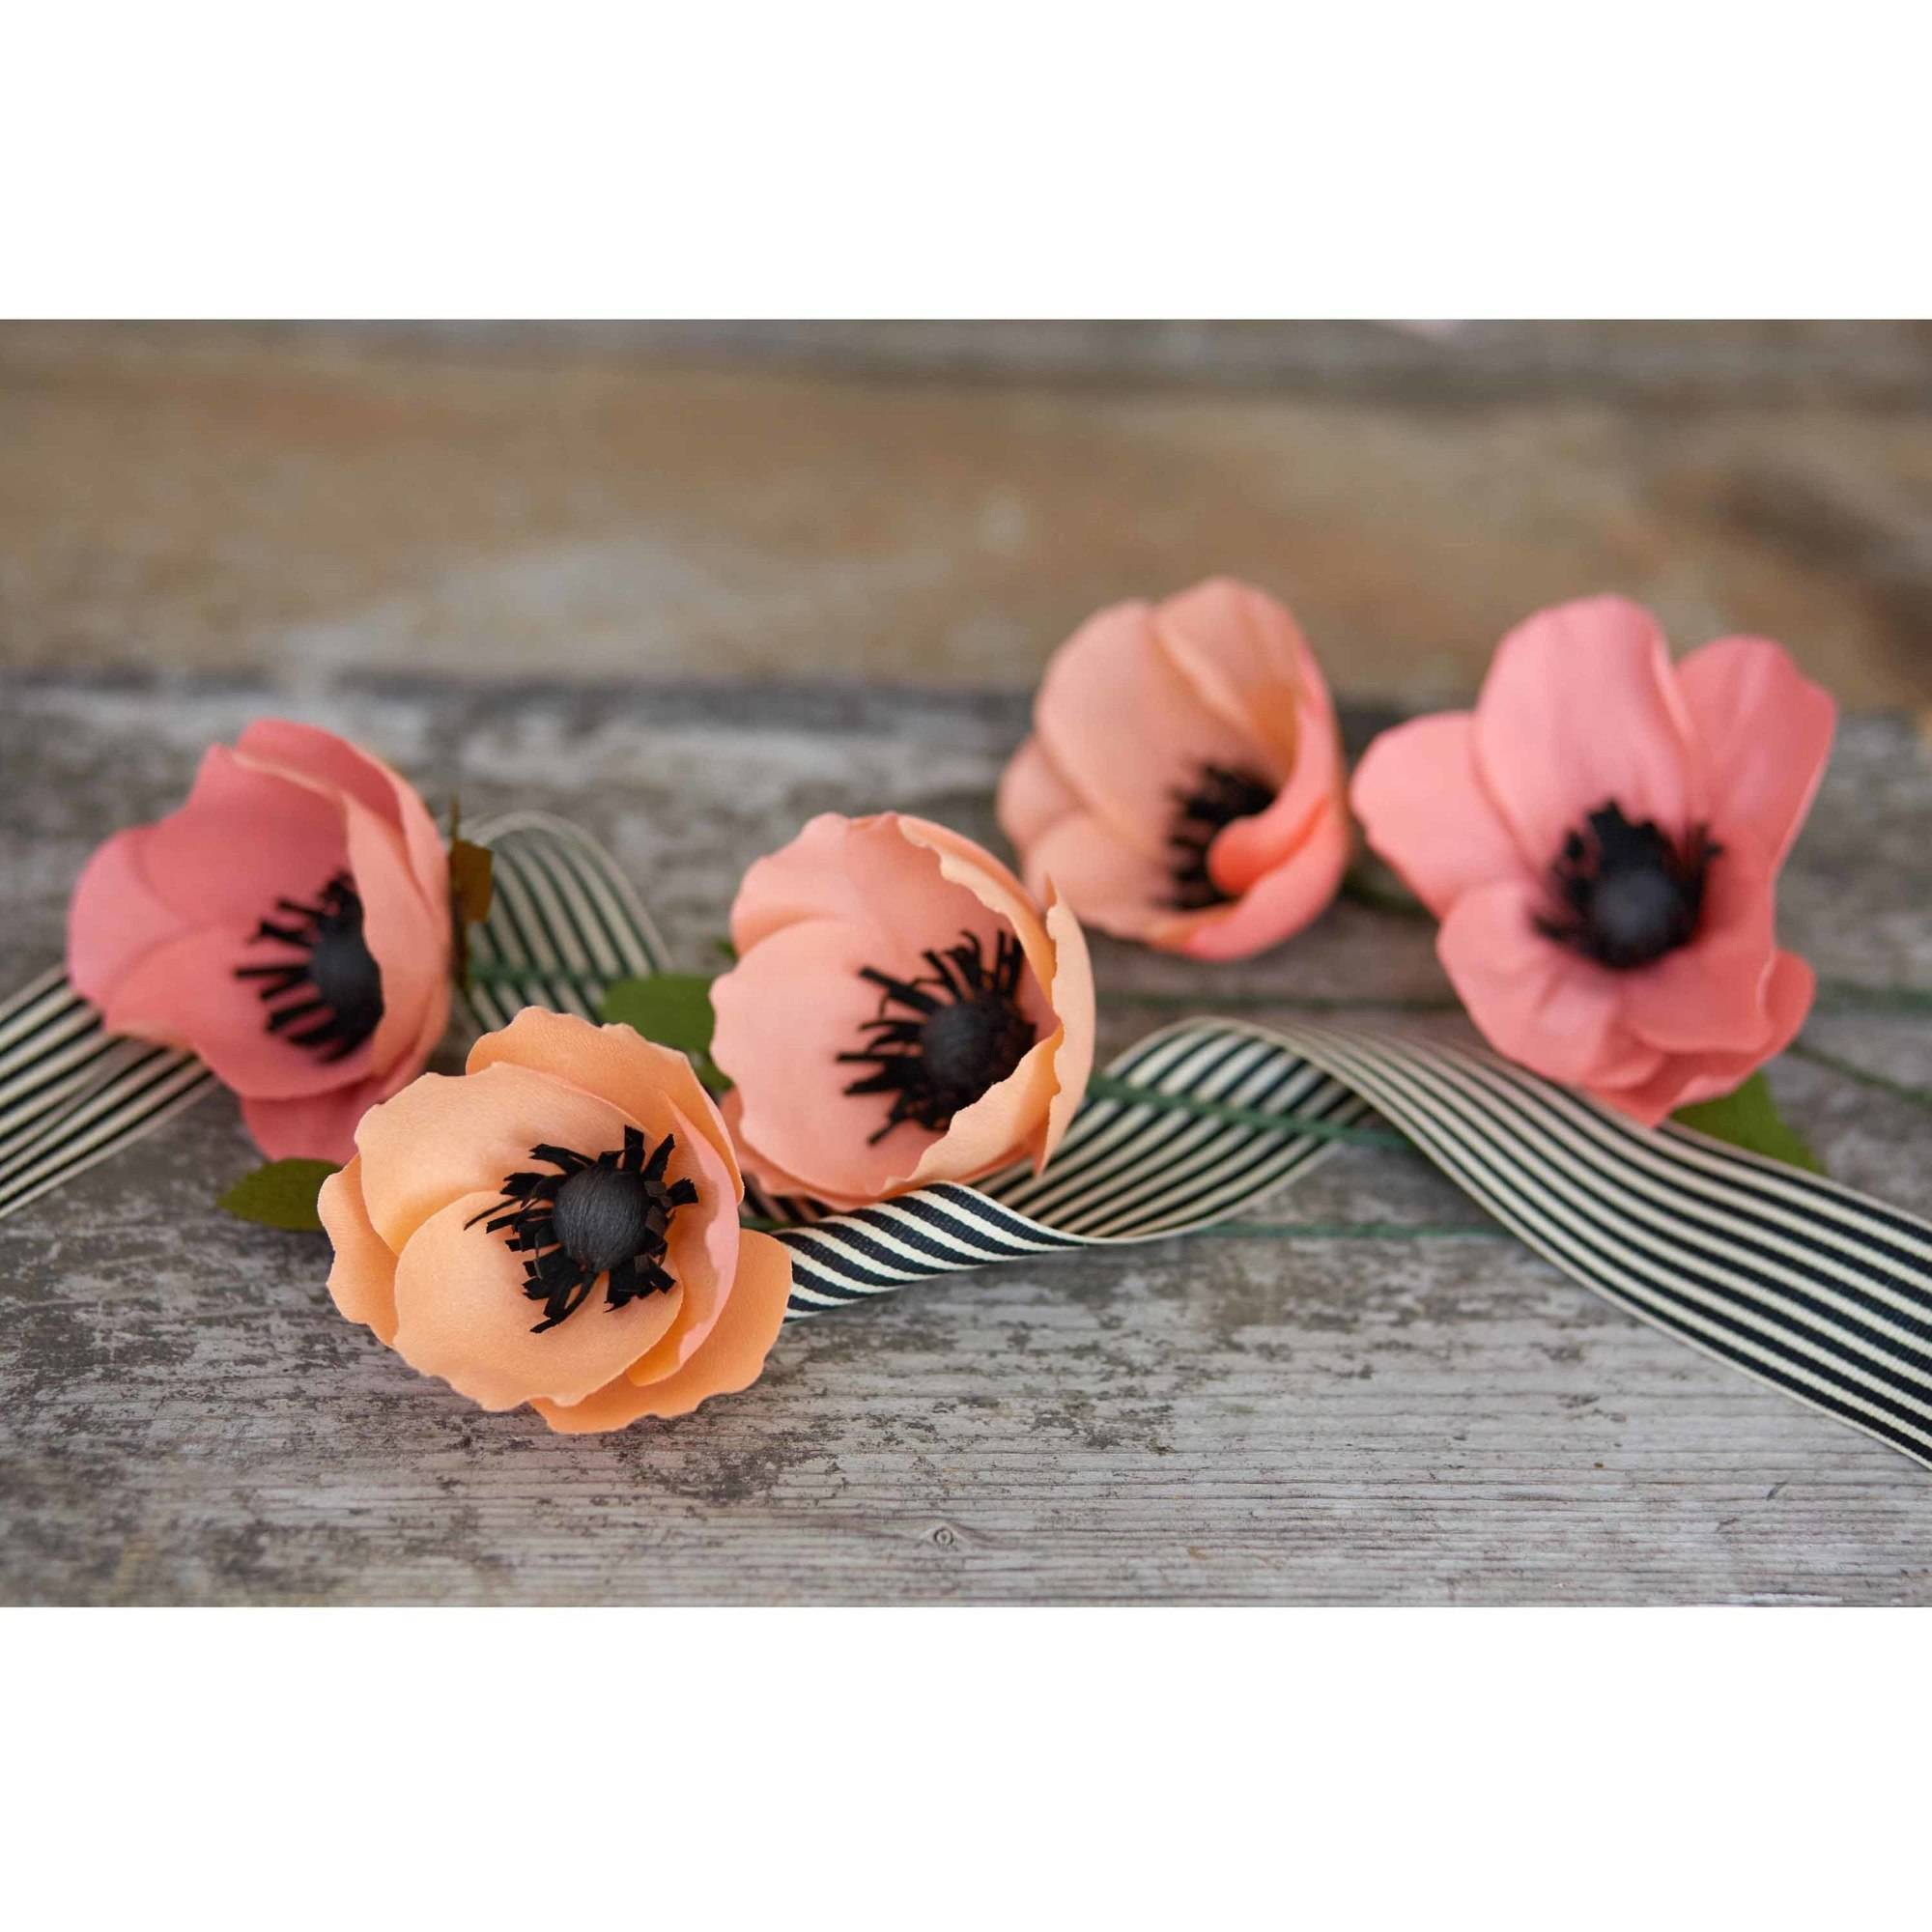 Lia Griffith Double Sided Crepe Paper Blush Peach Pack 2 Sheets